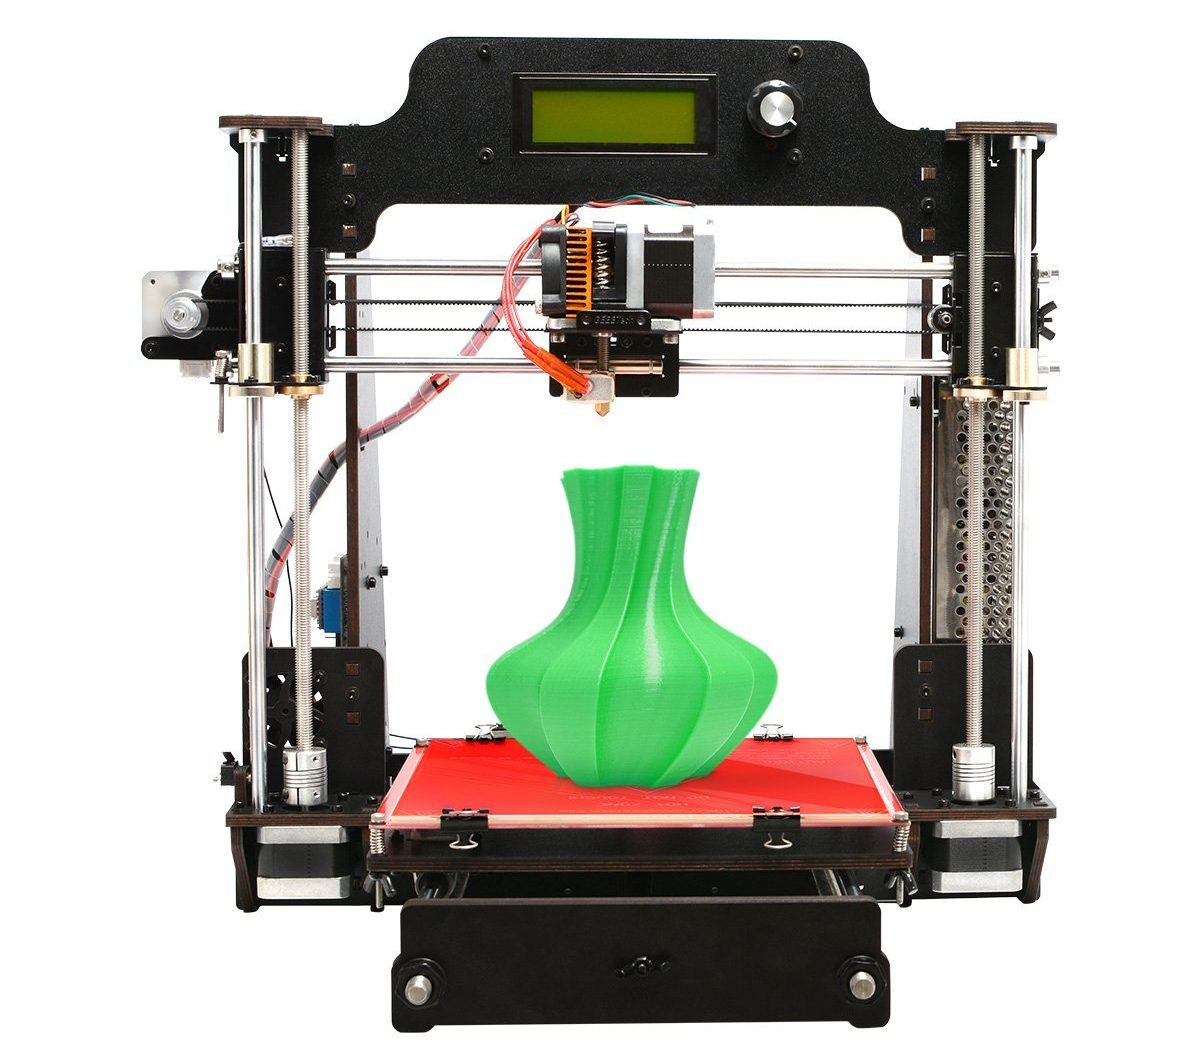 best 3d printer kit, best diy 3d printer, diy 3d printer, 3d printer kit